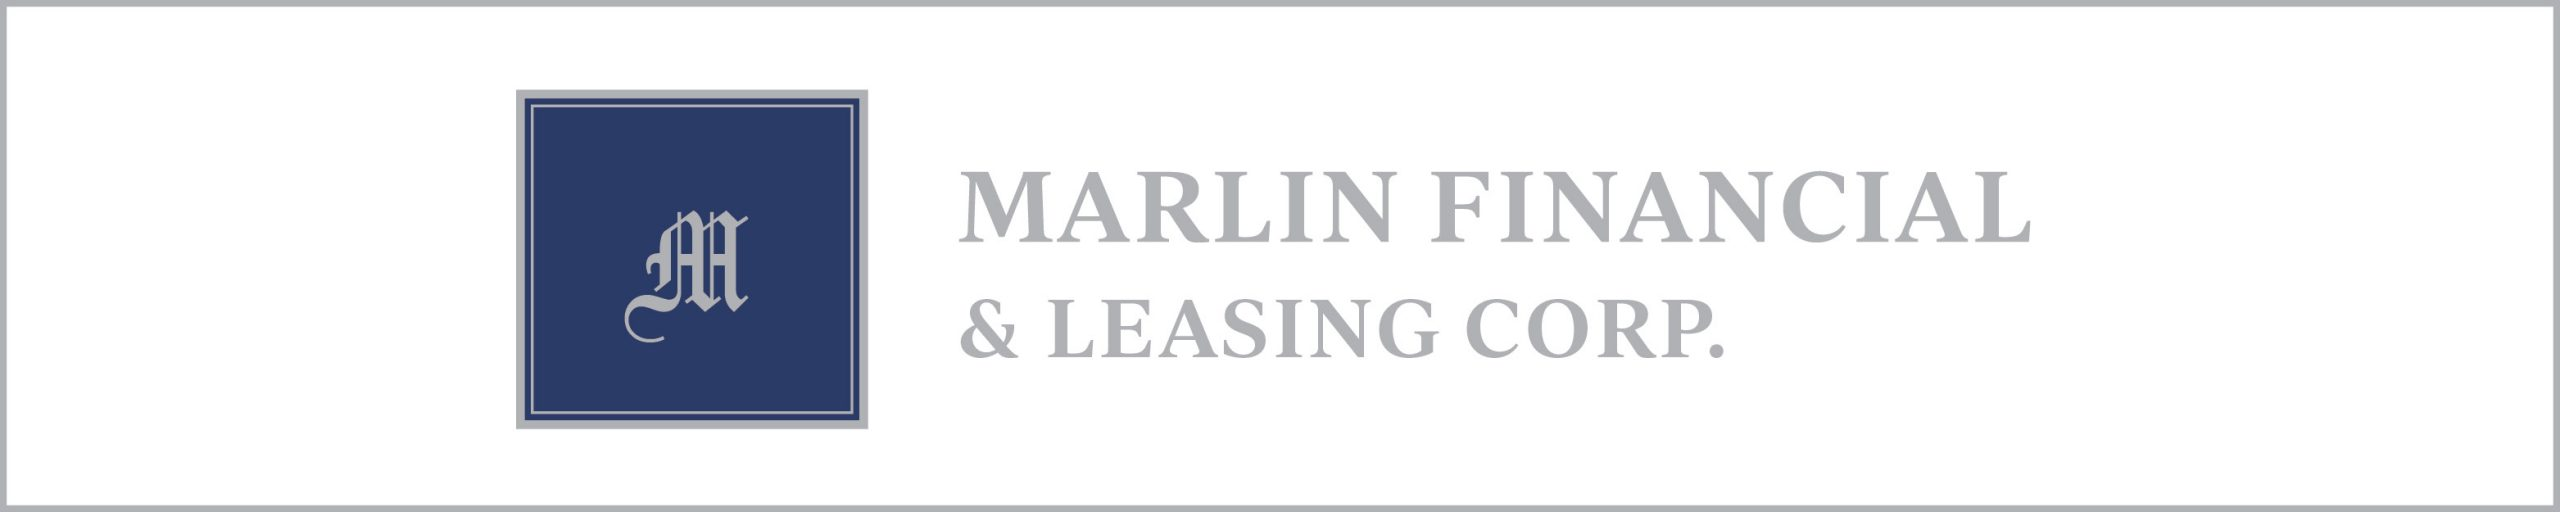 Marlin Financial & Leasing Corp. Ad